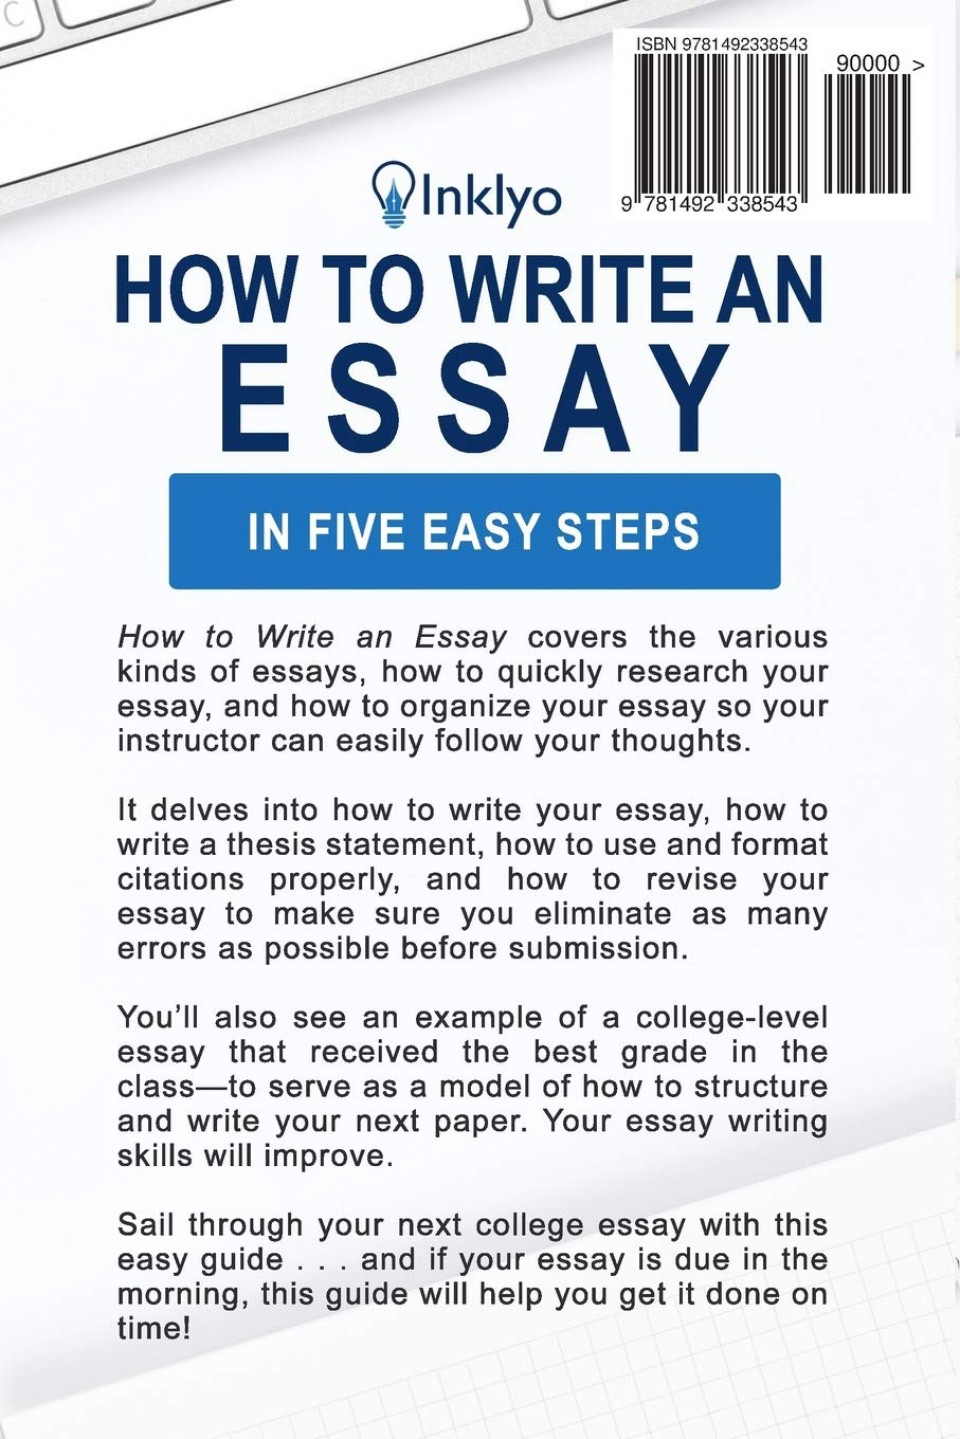 002 How To Write An Essay Example Shocking In Mla Format 2018 Introduction For College Paper Apa 960